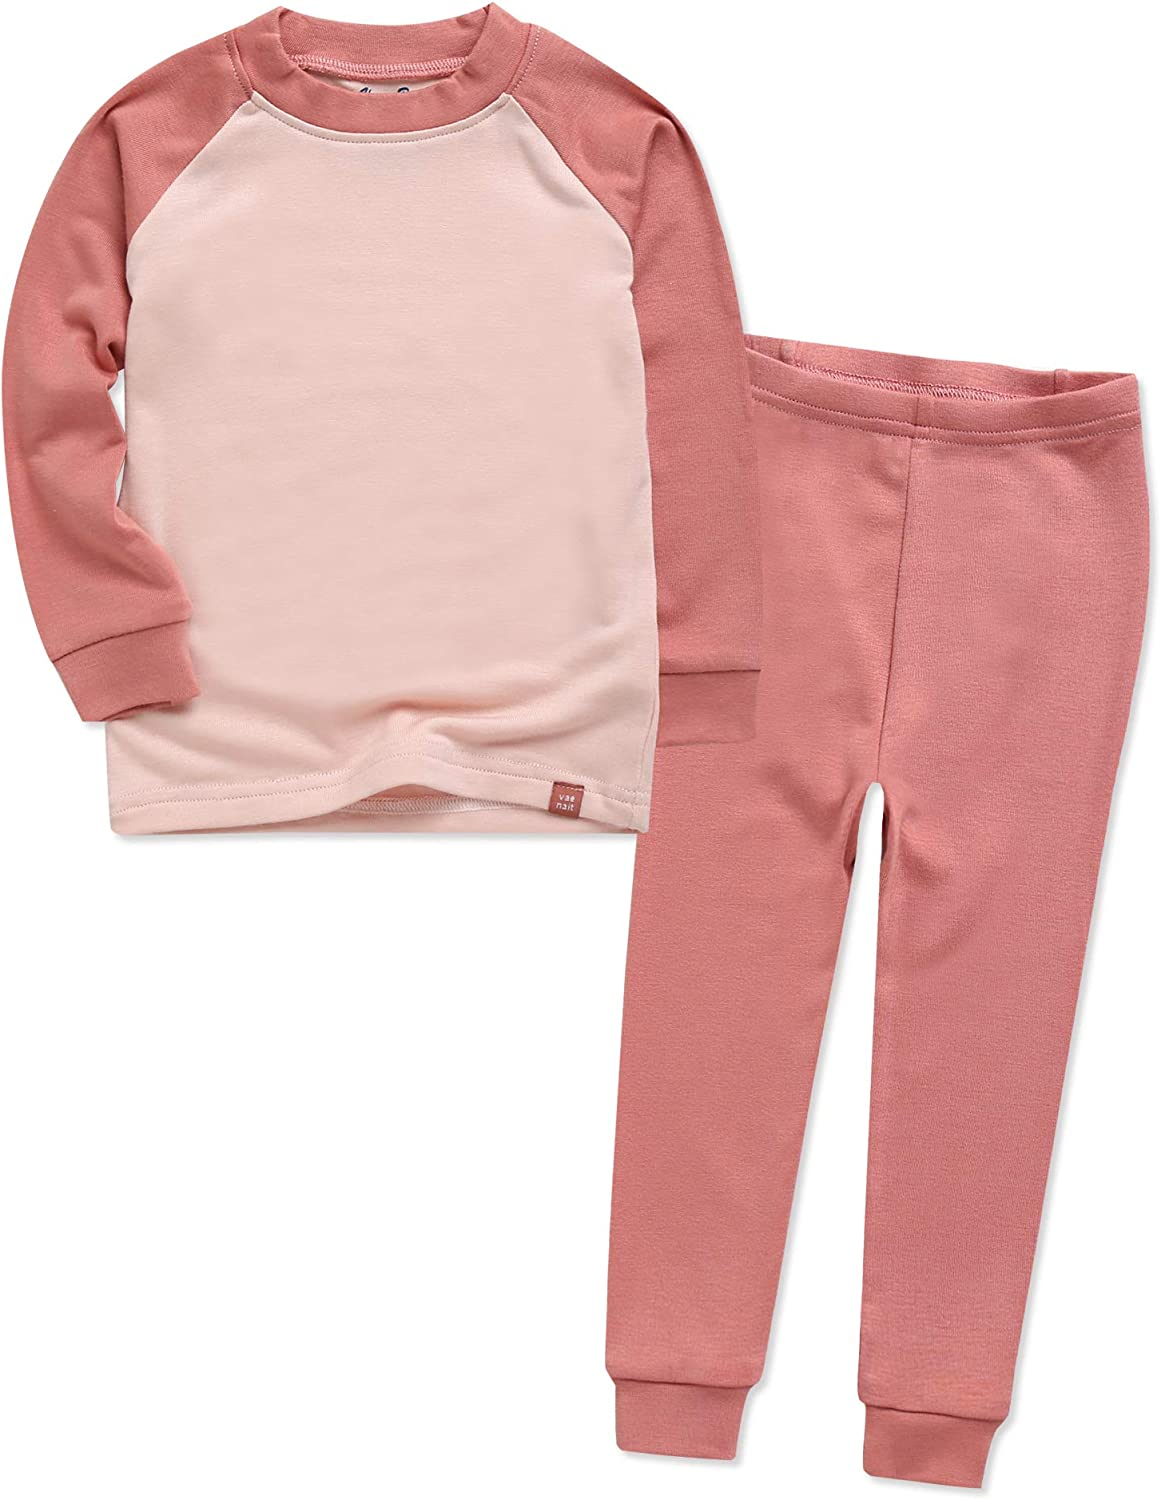 VAENAIT BABY 12M-12Y Toddler Kids Selling and selling Unisex Fashionable Comfy Boys Soft Girls